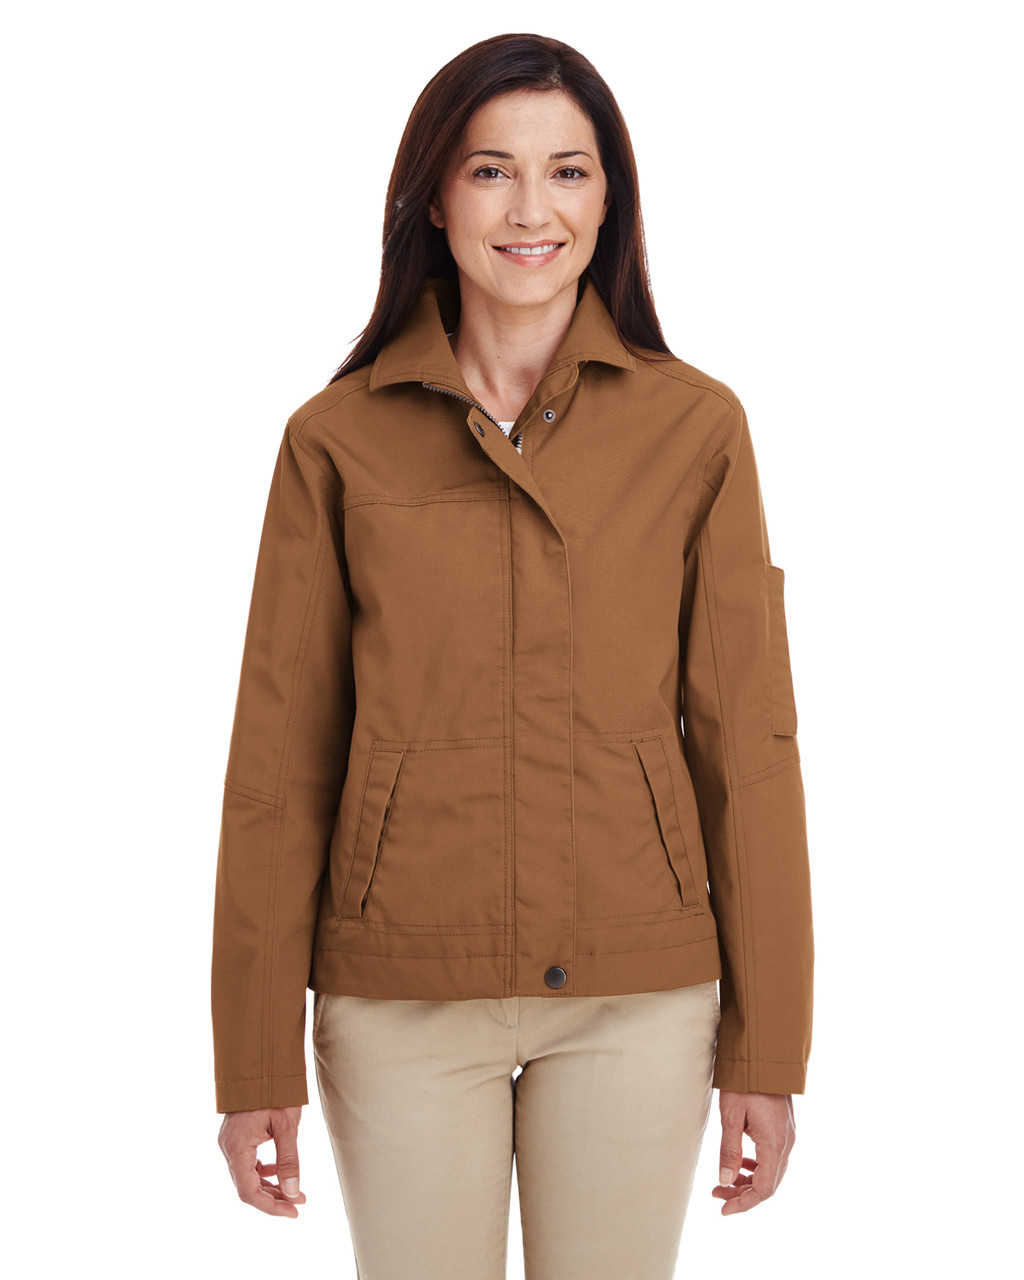 Duck Brown - M705W Harriton Ladies' Auxiliary Canvas Work Jacket